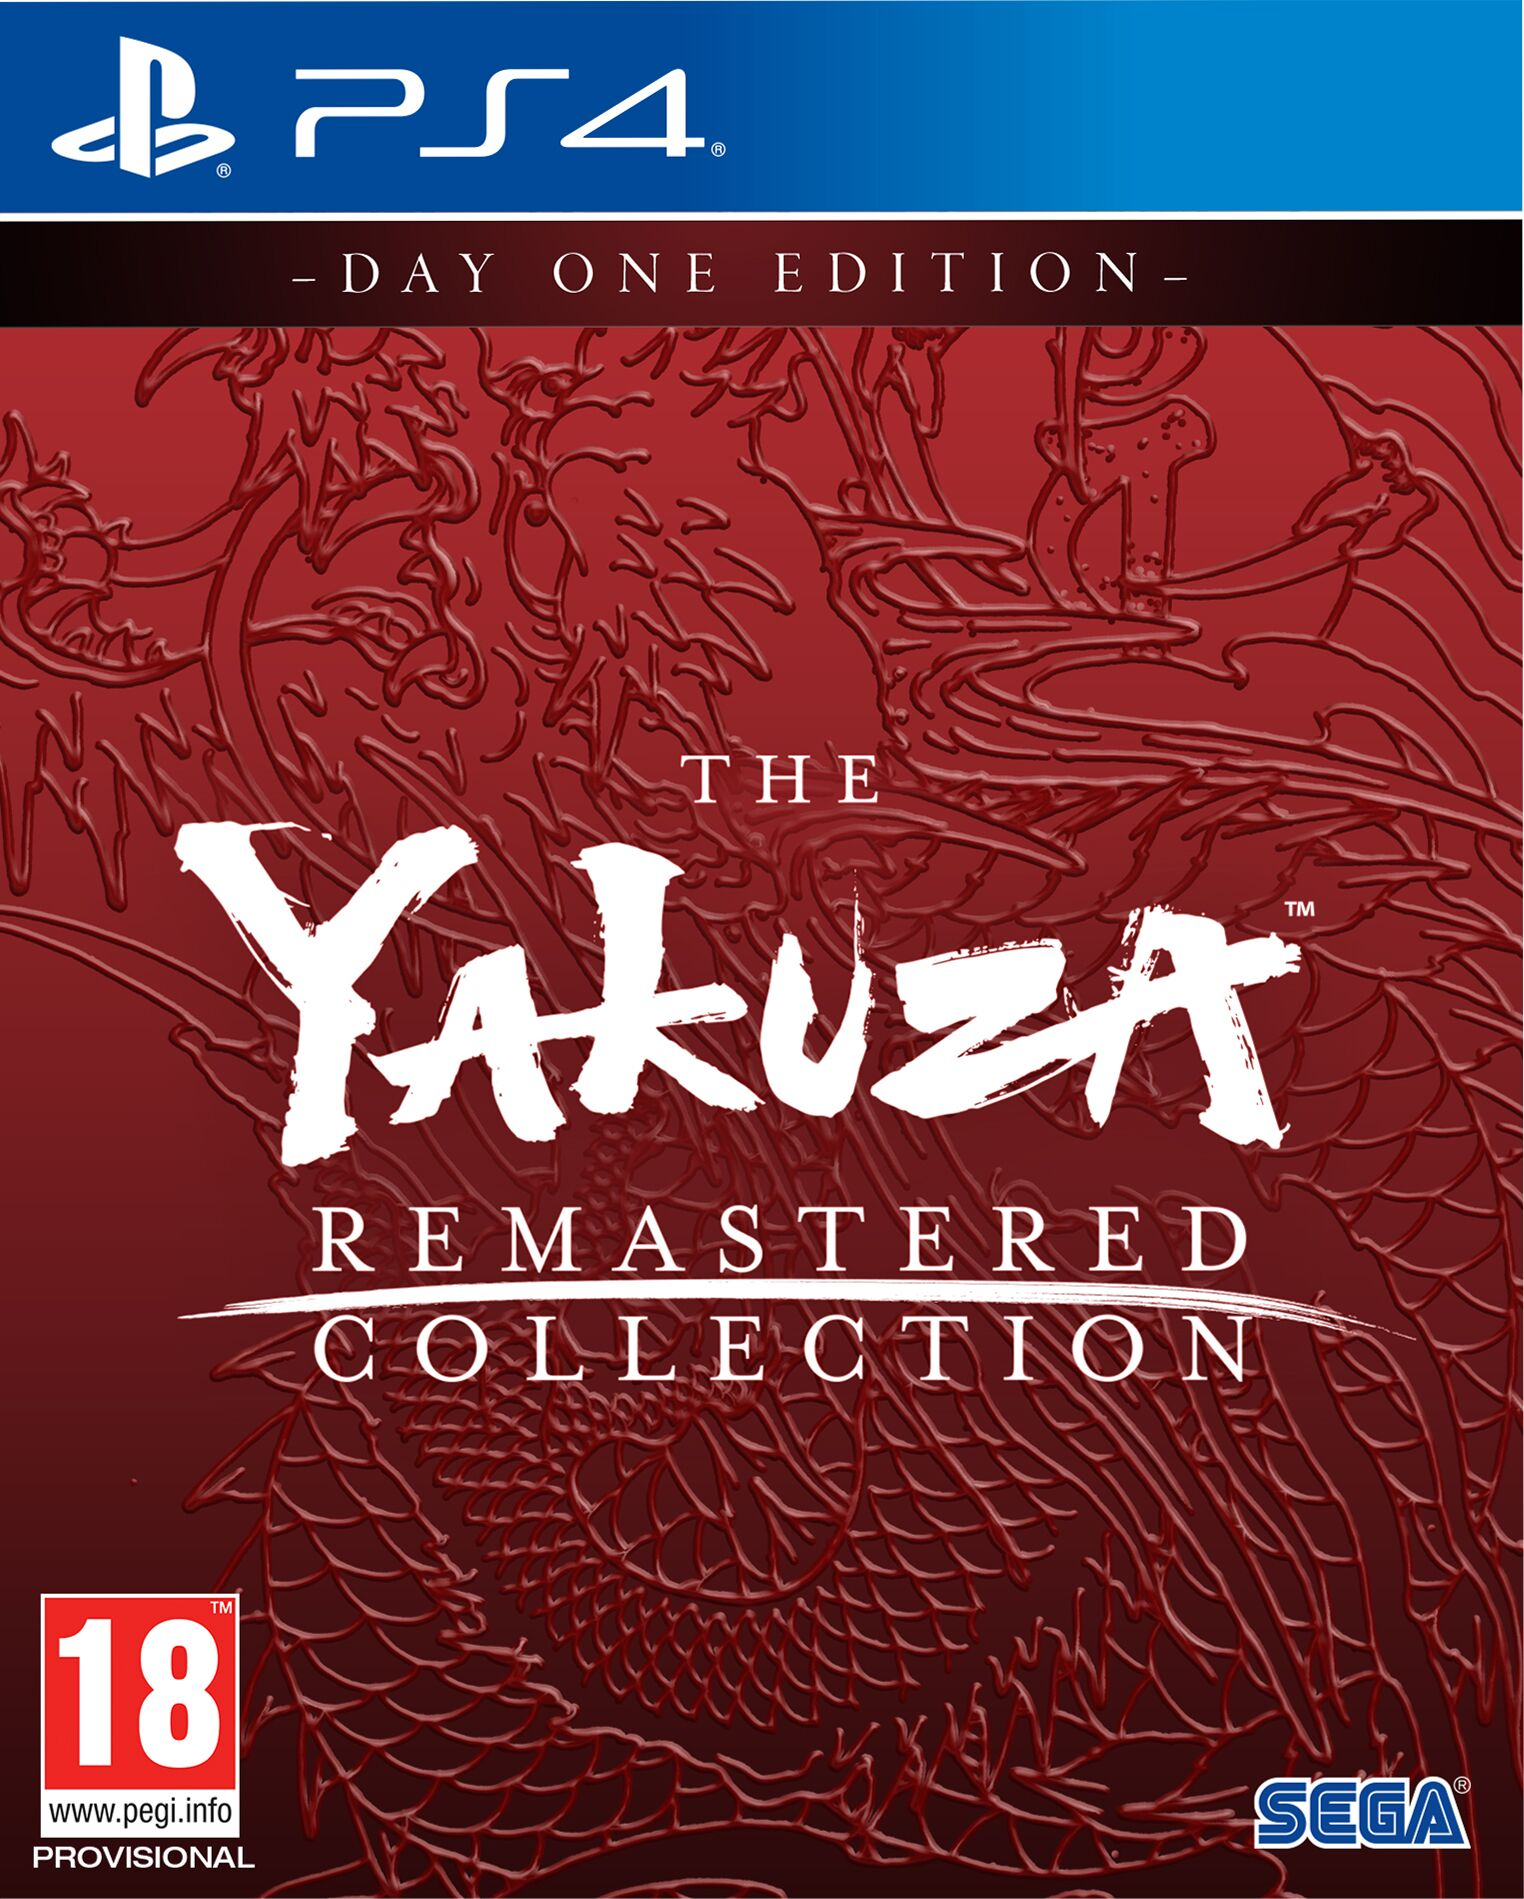 The Yakuza Remastered Collection: Day One Edition